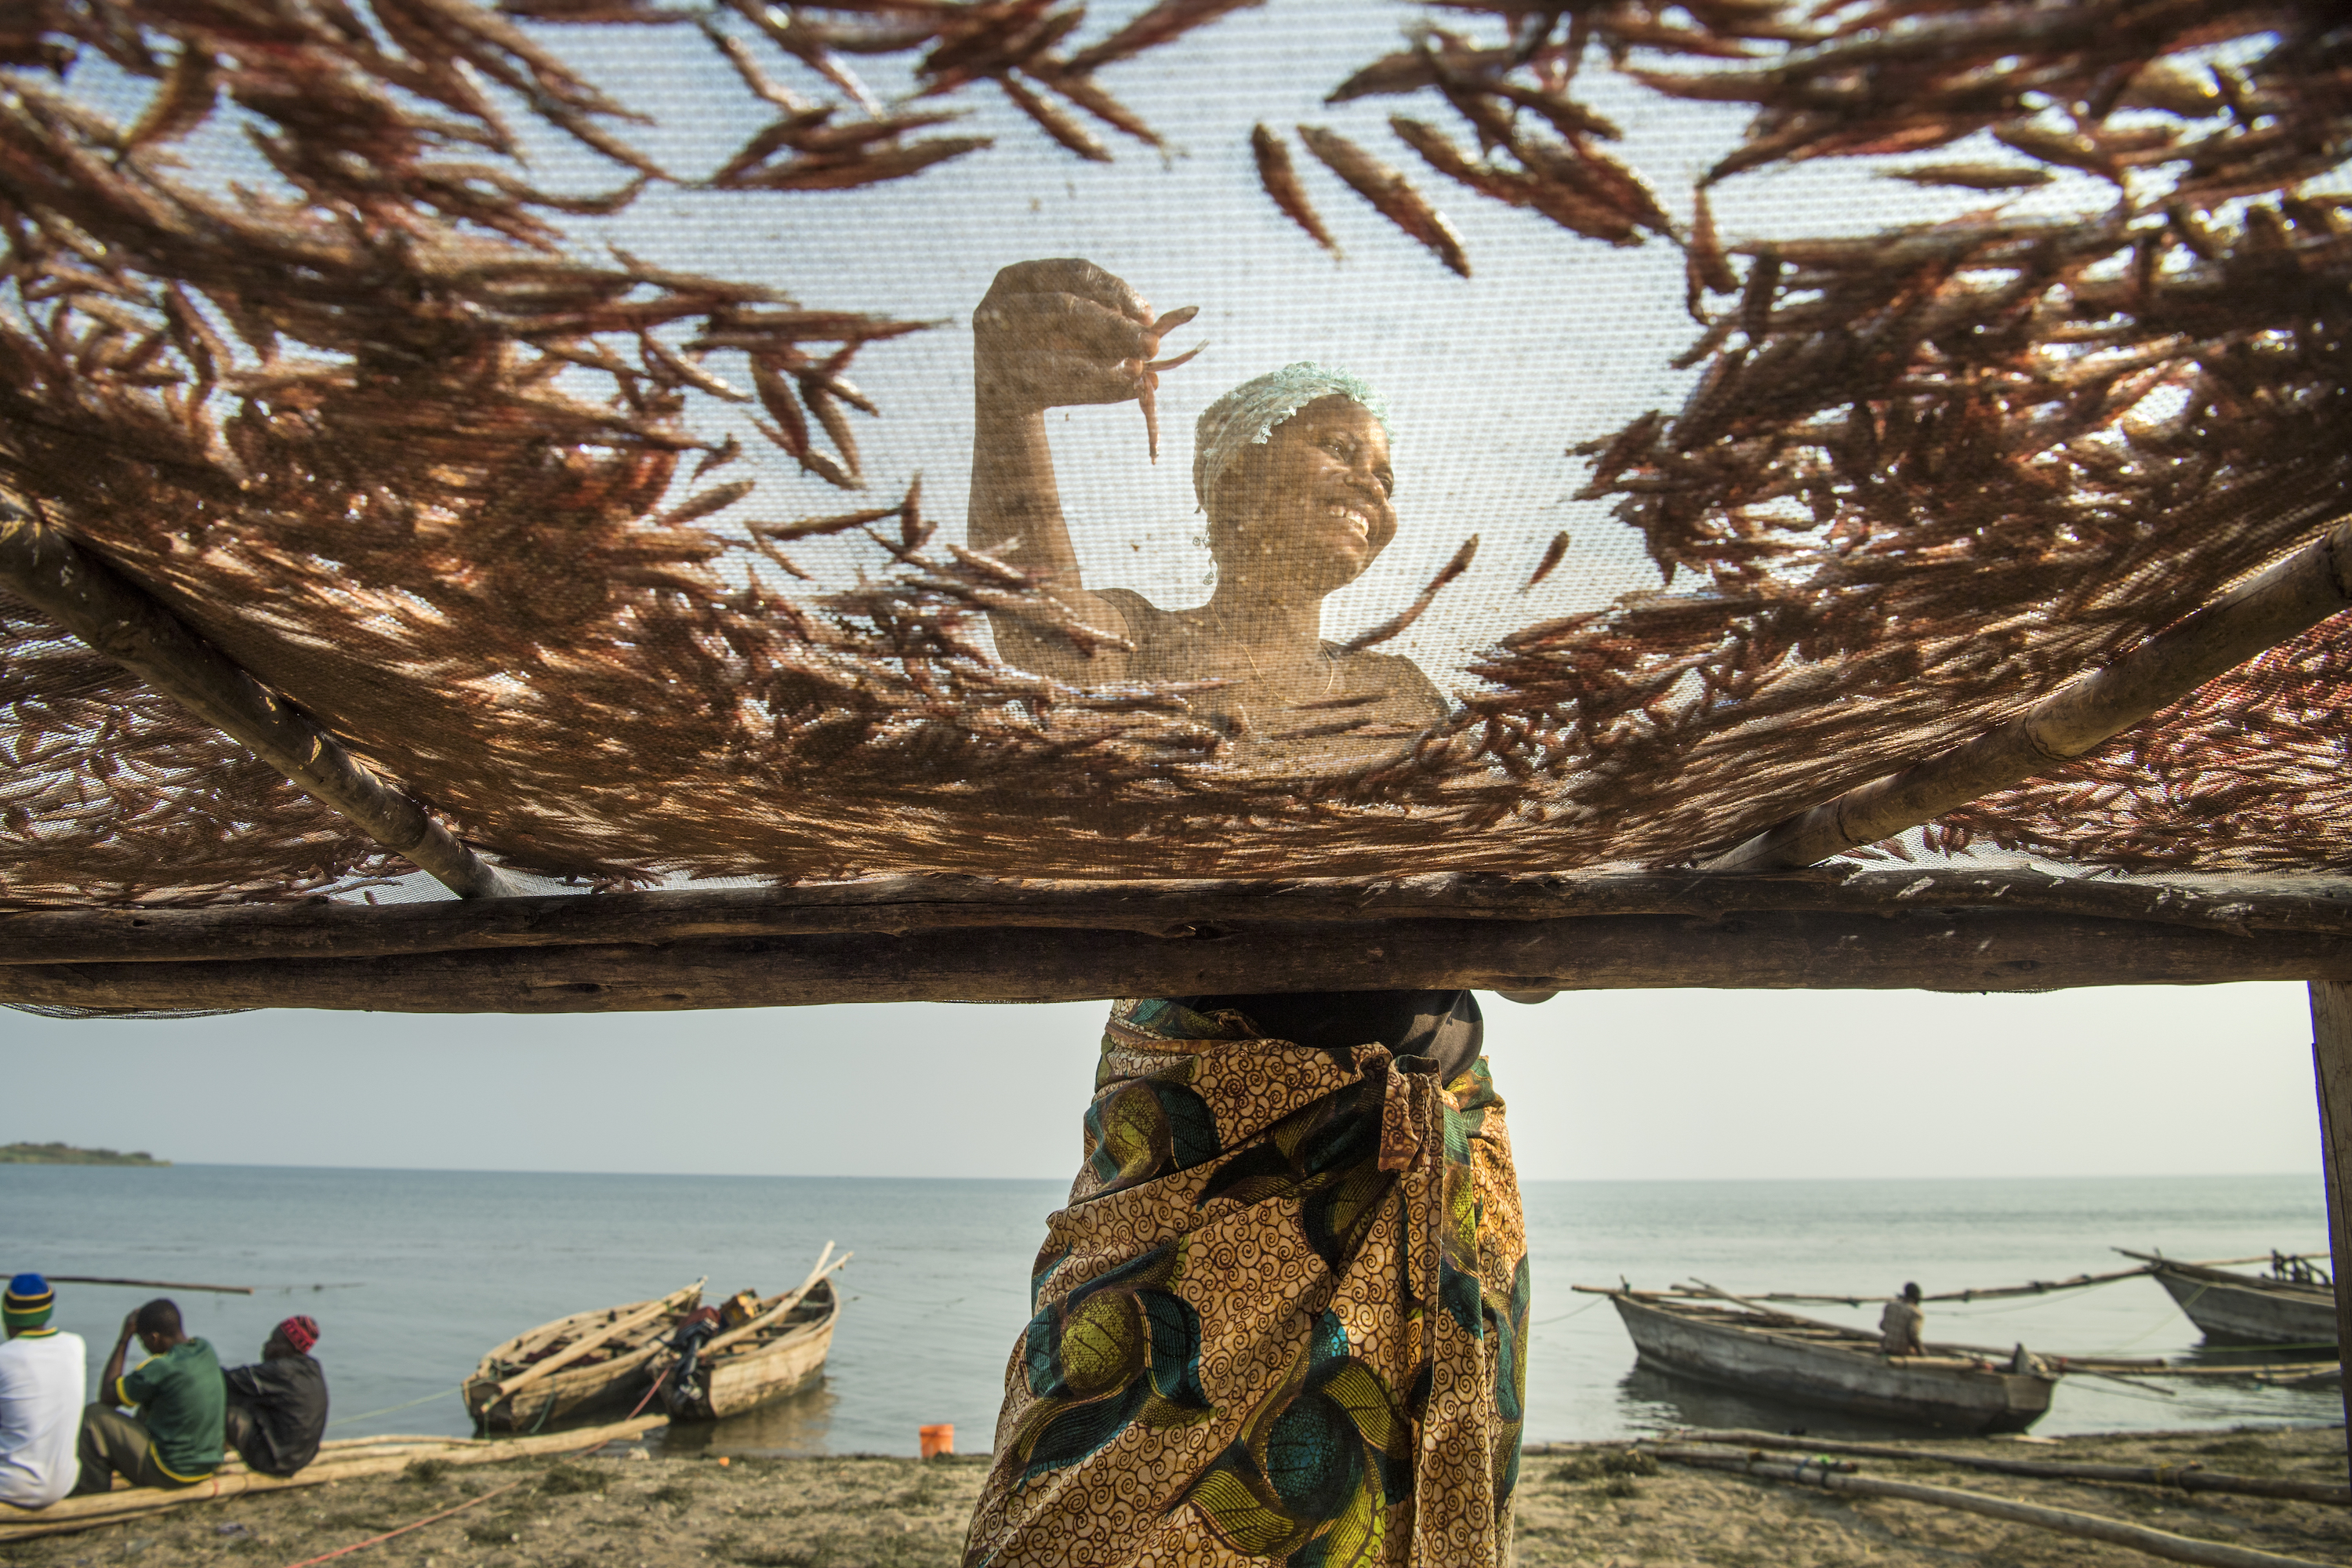 Tatu Habibu lays fish on drying racks on the shores of Lake Tanganyika, Tanzania. Ami Vitale